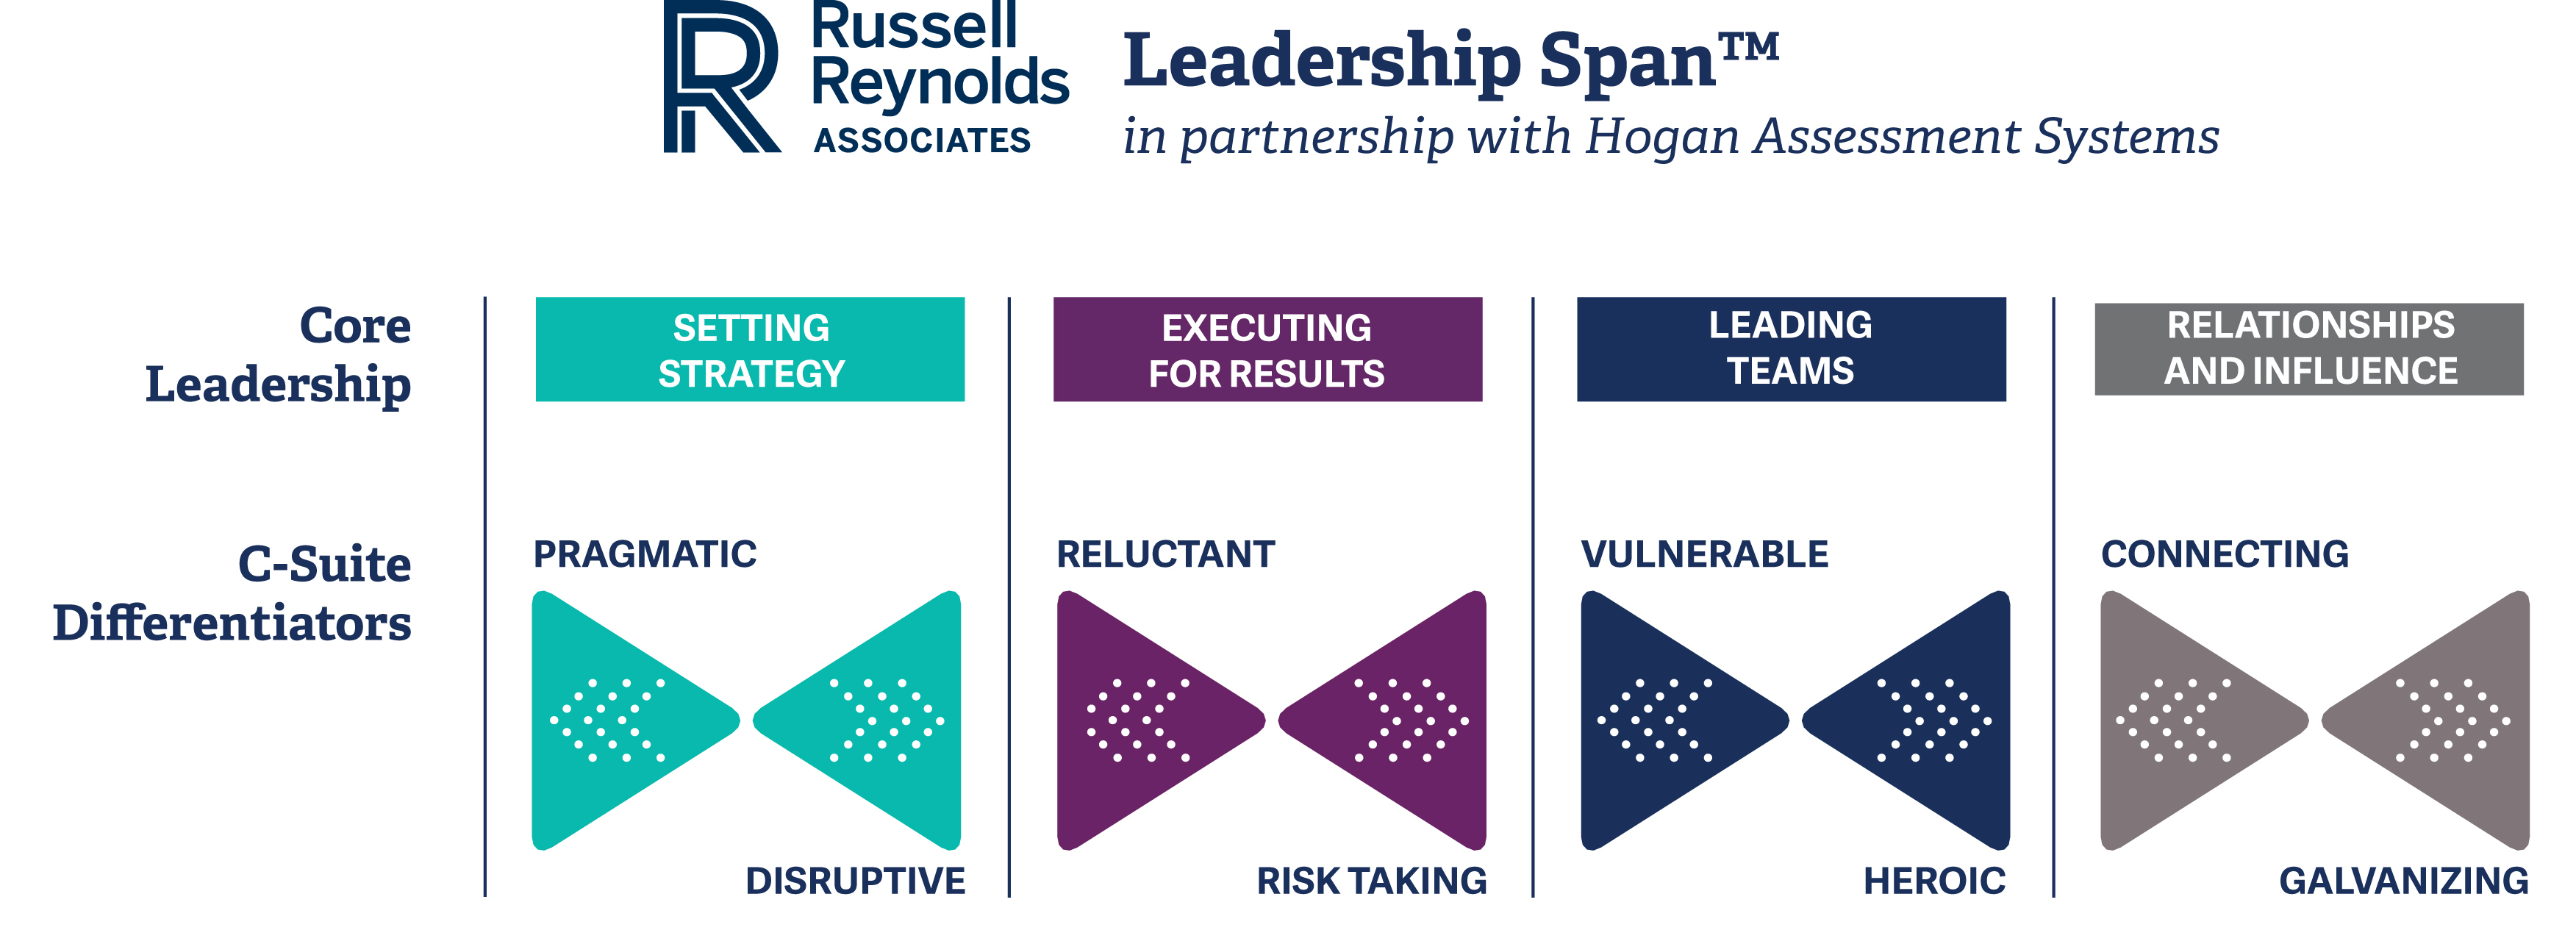 Russell Reynolds Associates and Hogan Assessments introduce Leadership Span(TM) (Graphic: Business Wire)